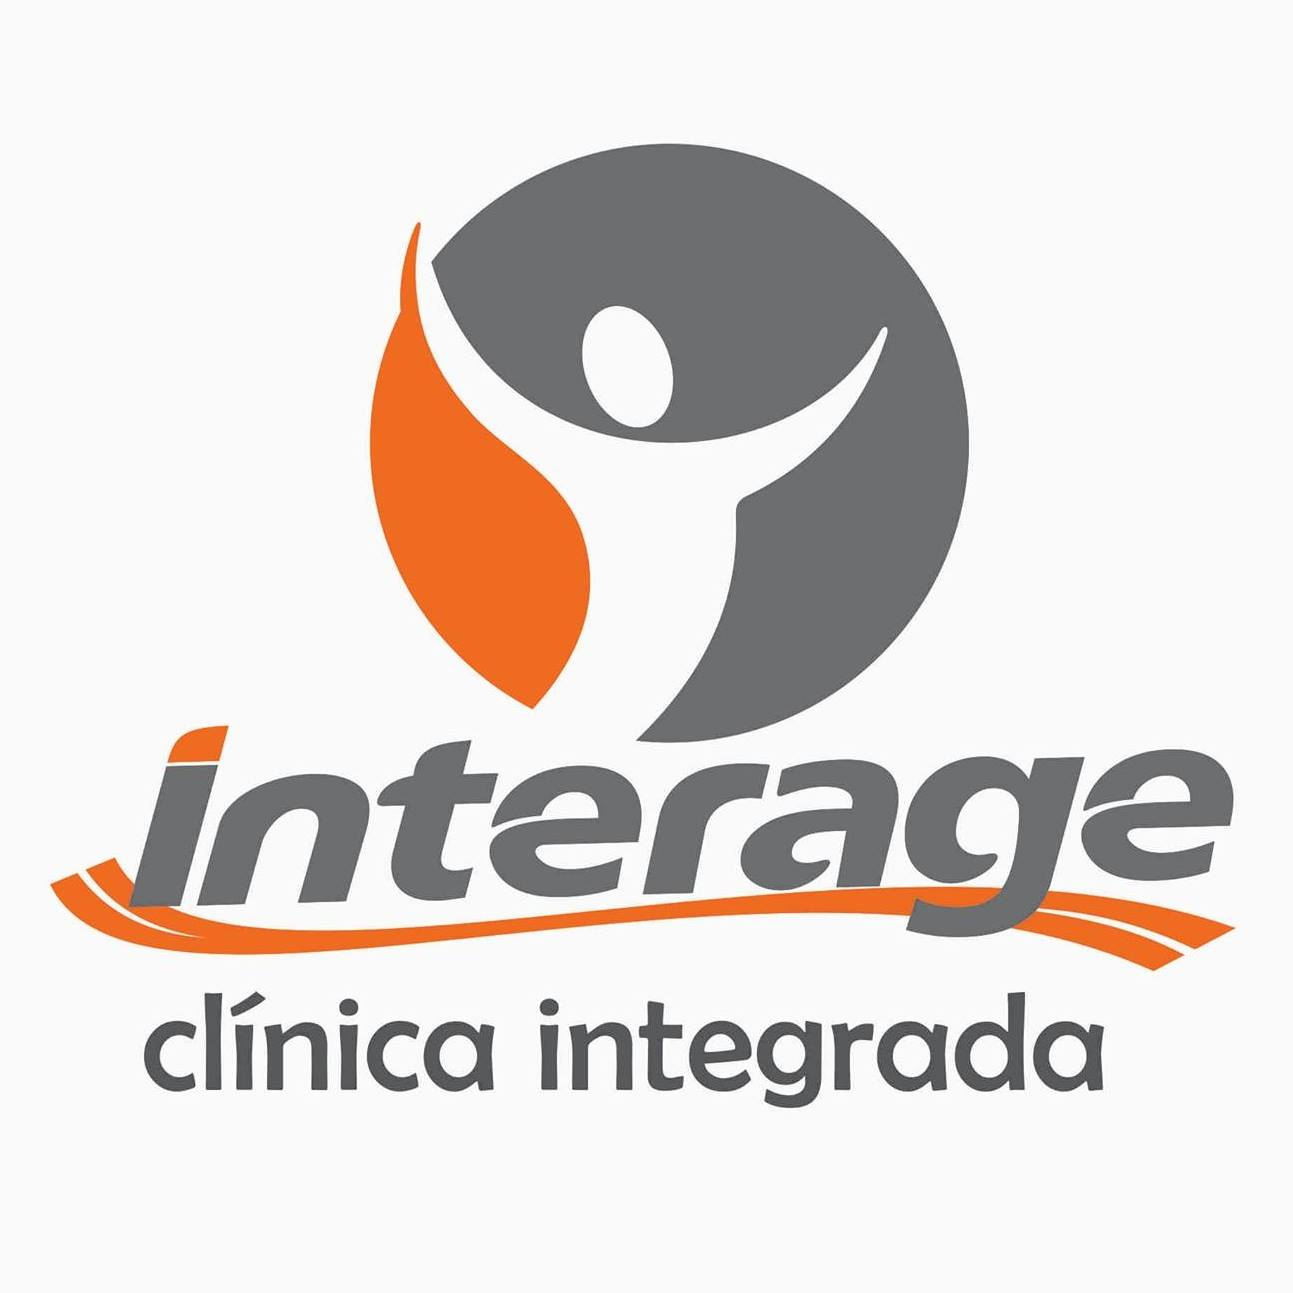 INTERAGE - CLINICA INTEGRADA